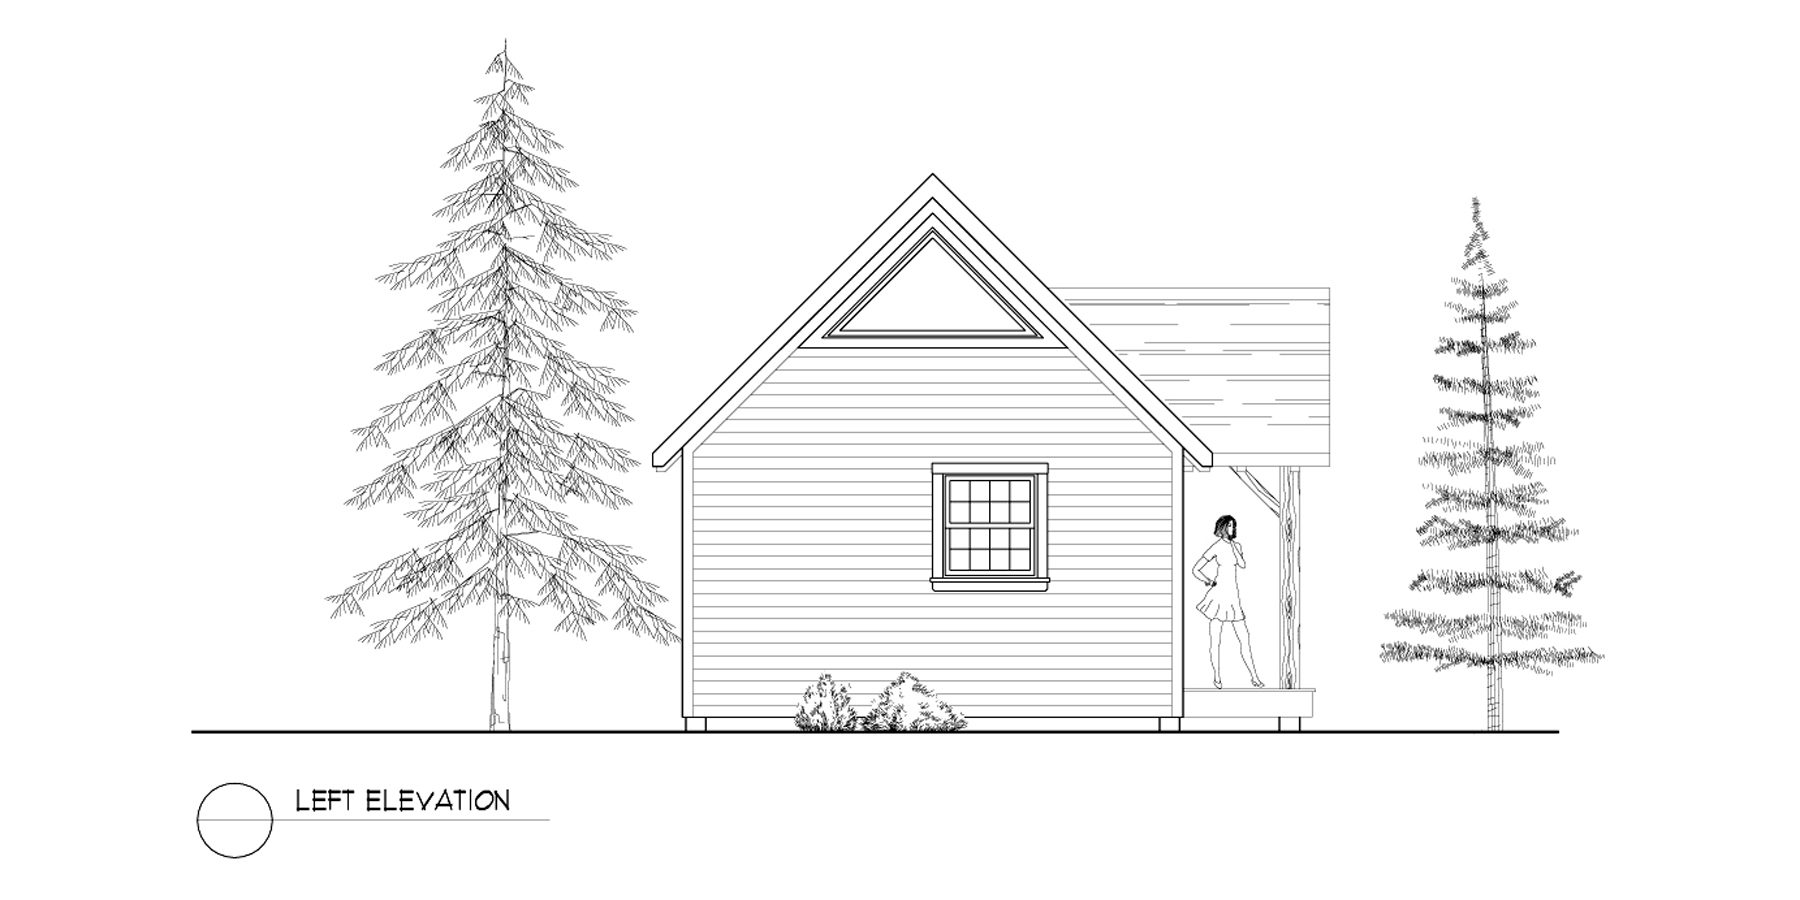 Normerica Timber Frames, House Plan, The Dillon 2254, Left Elevation